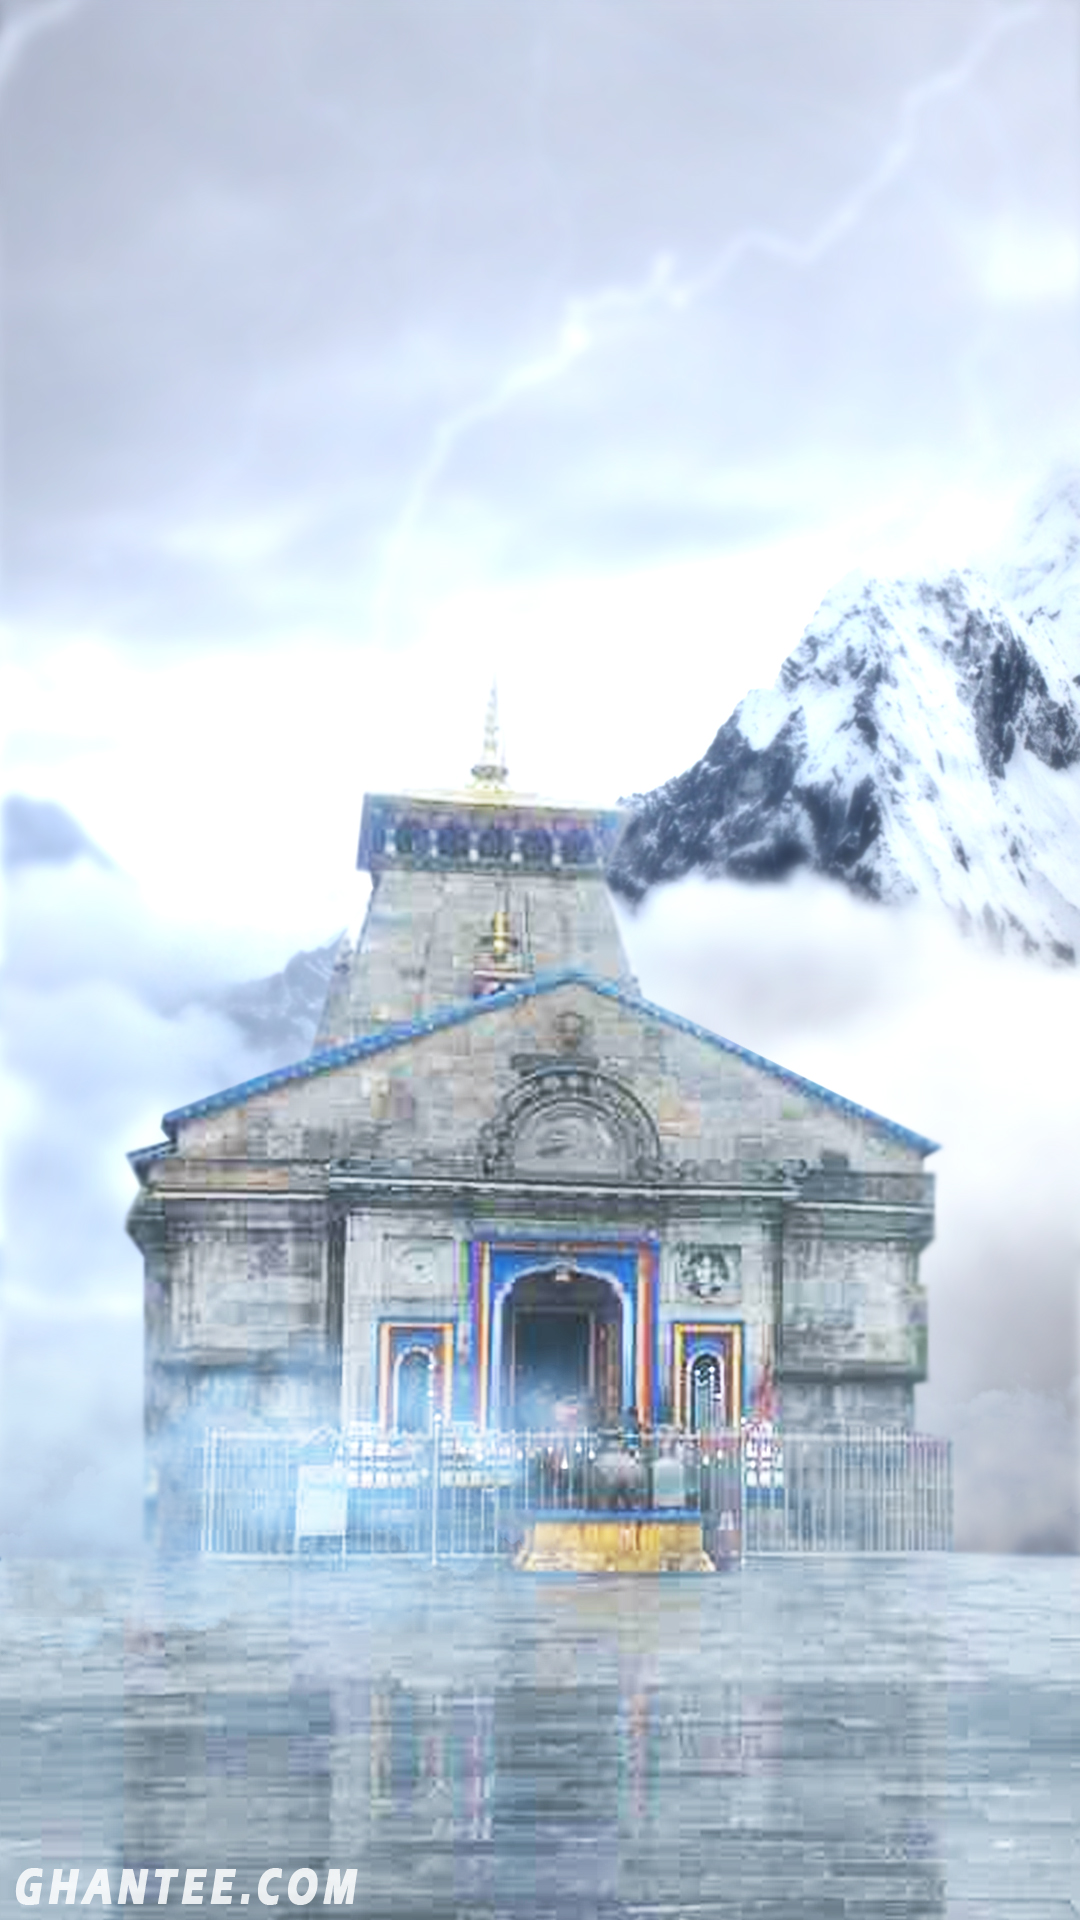 kedarnath temple hd wallpaper for mobile